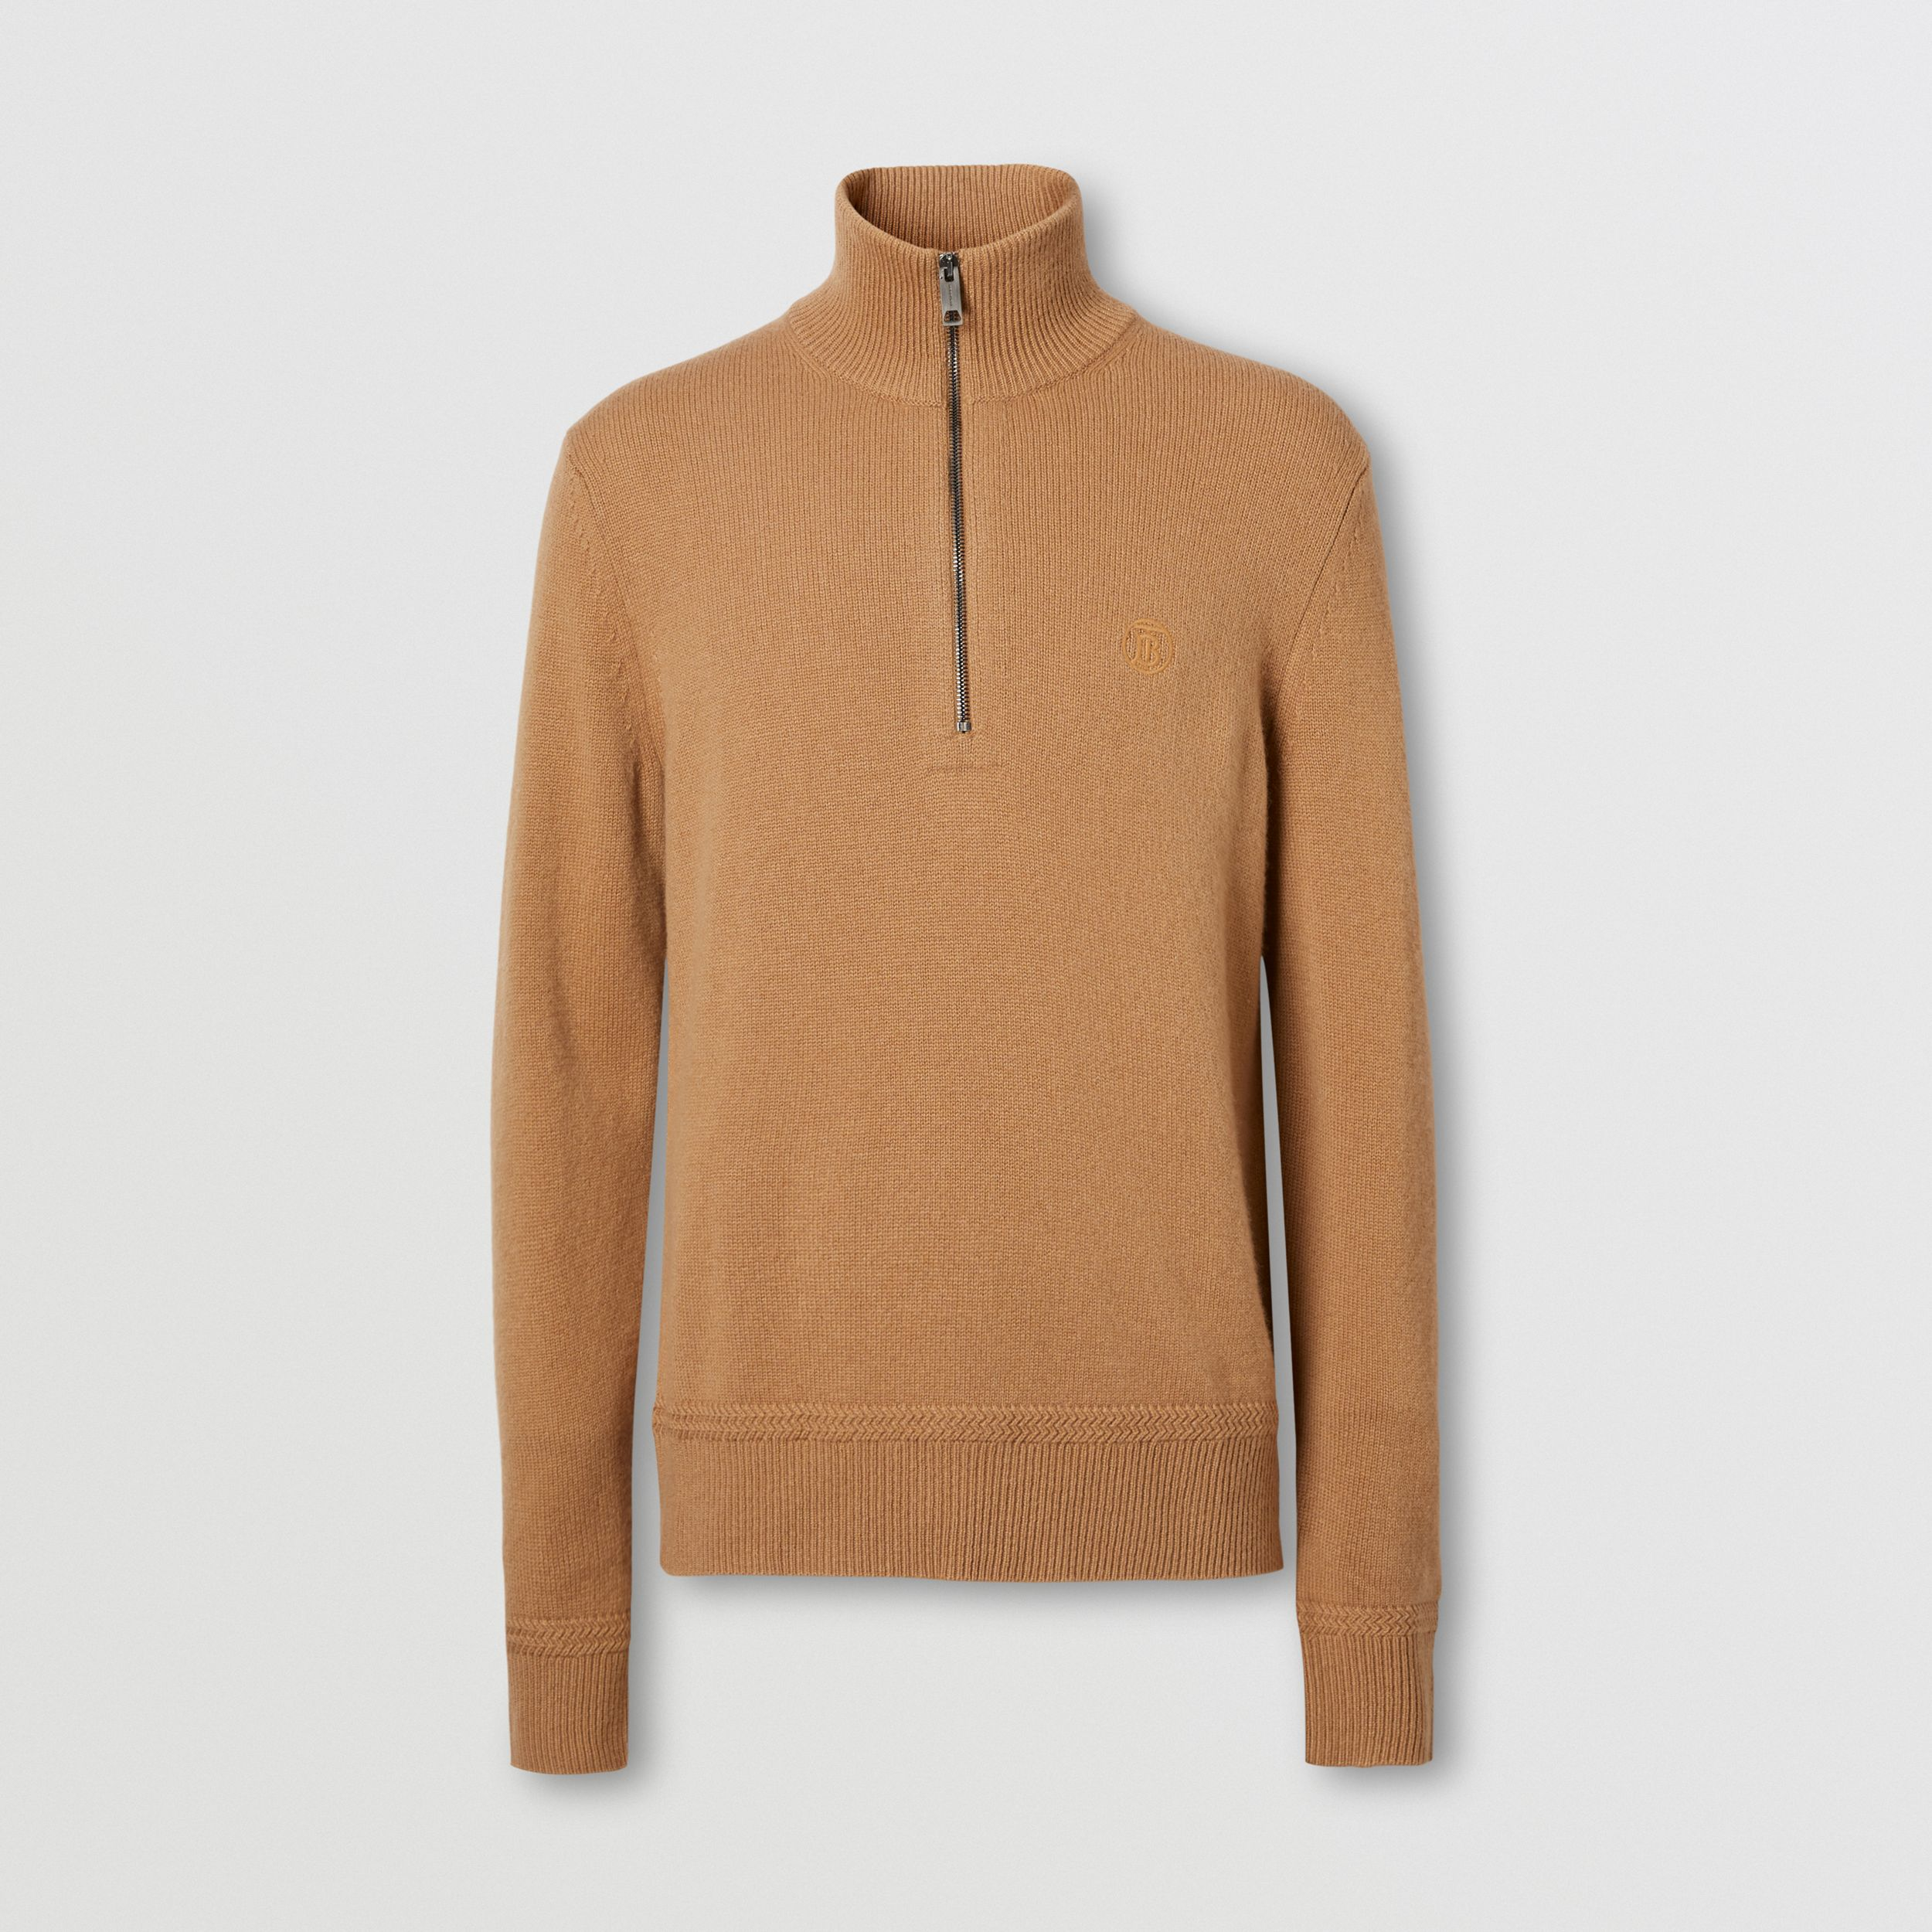 Monogram Motif Cashmere Funnel Neck Sweater in Camel - Men | Burberry Hong Kong S.A.R. - 4